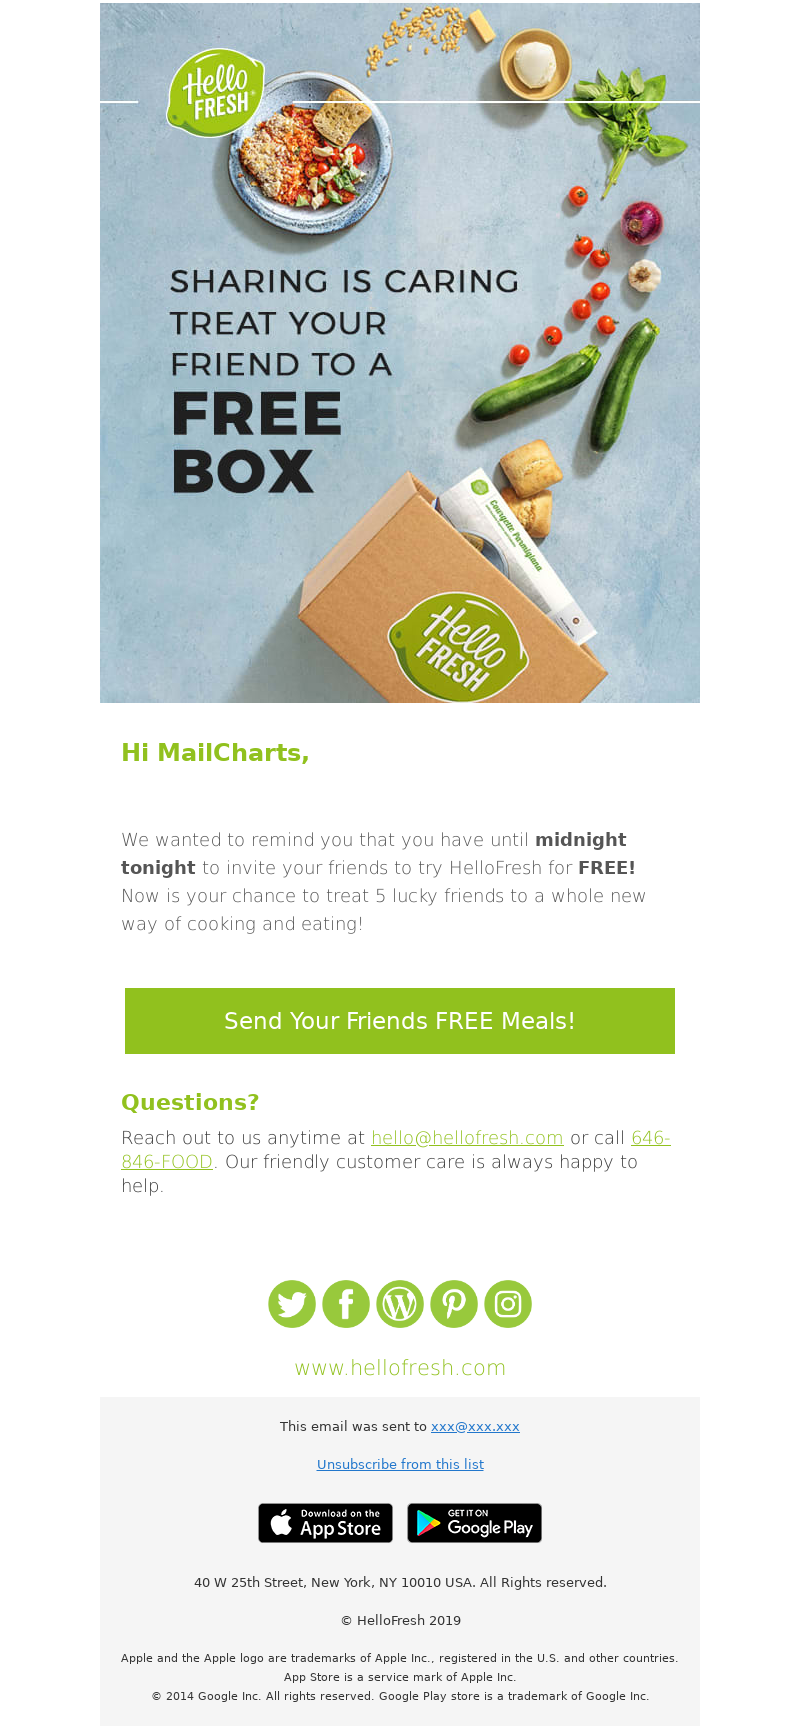 HelloFresh USA - [REMINDER] MailCharts, you UNLOCKED invites to feed your friends!